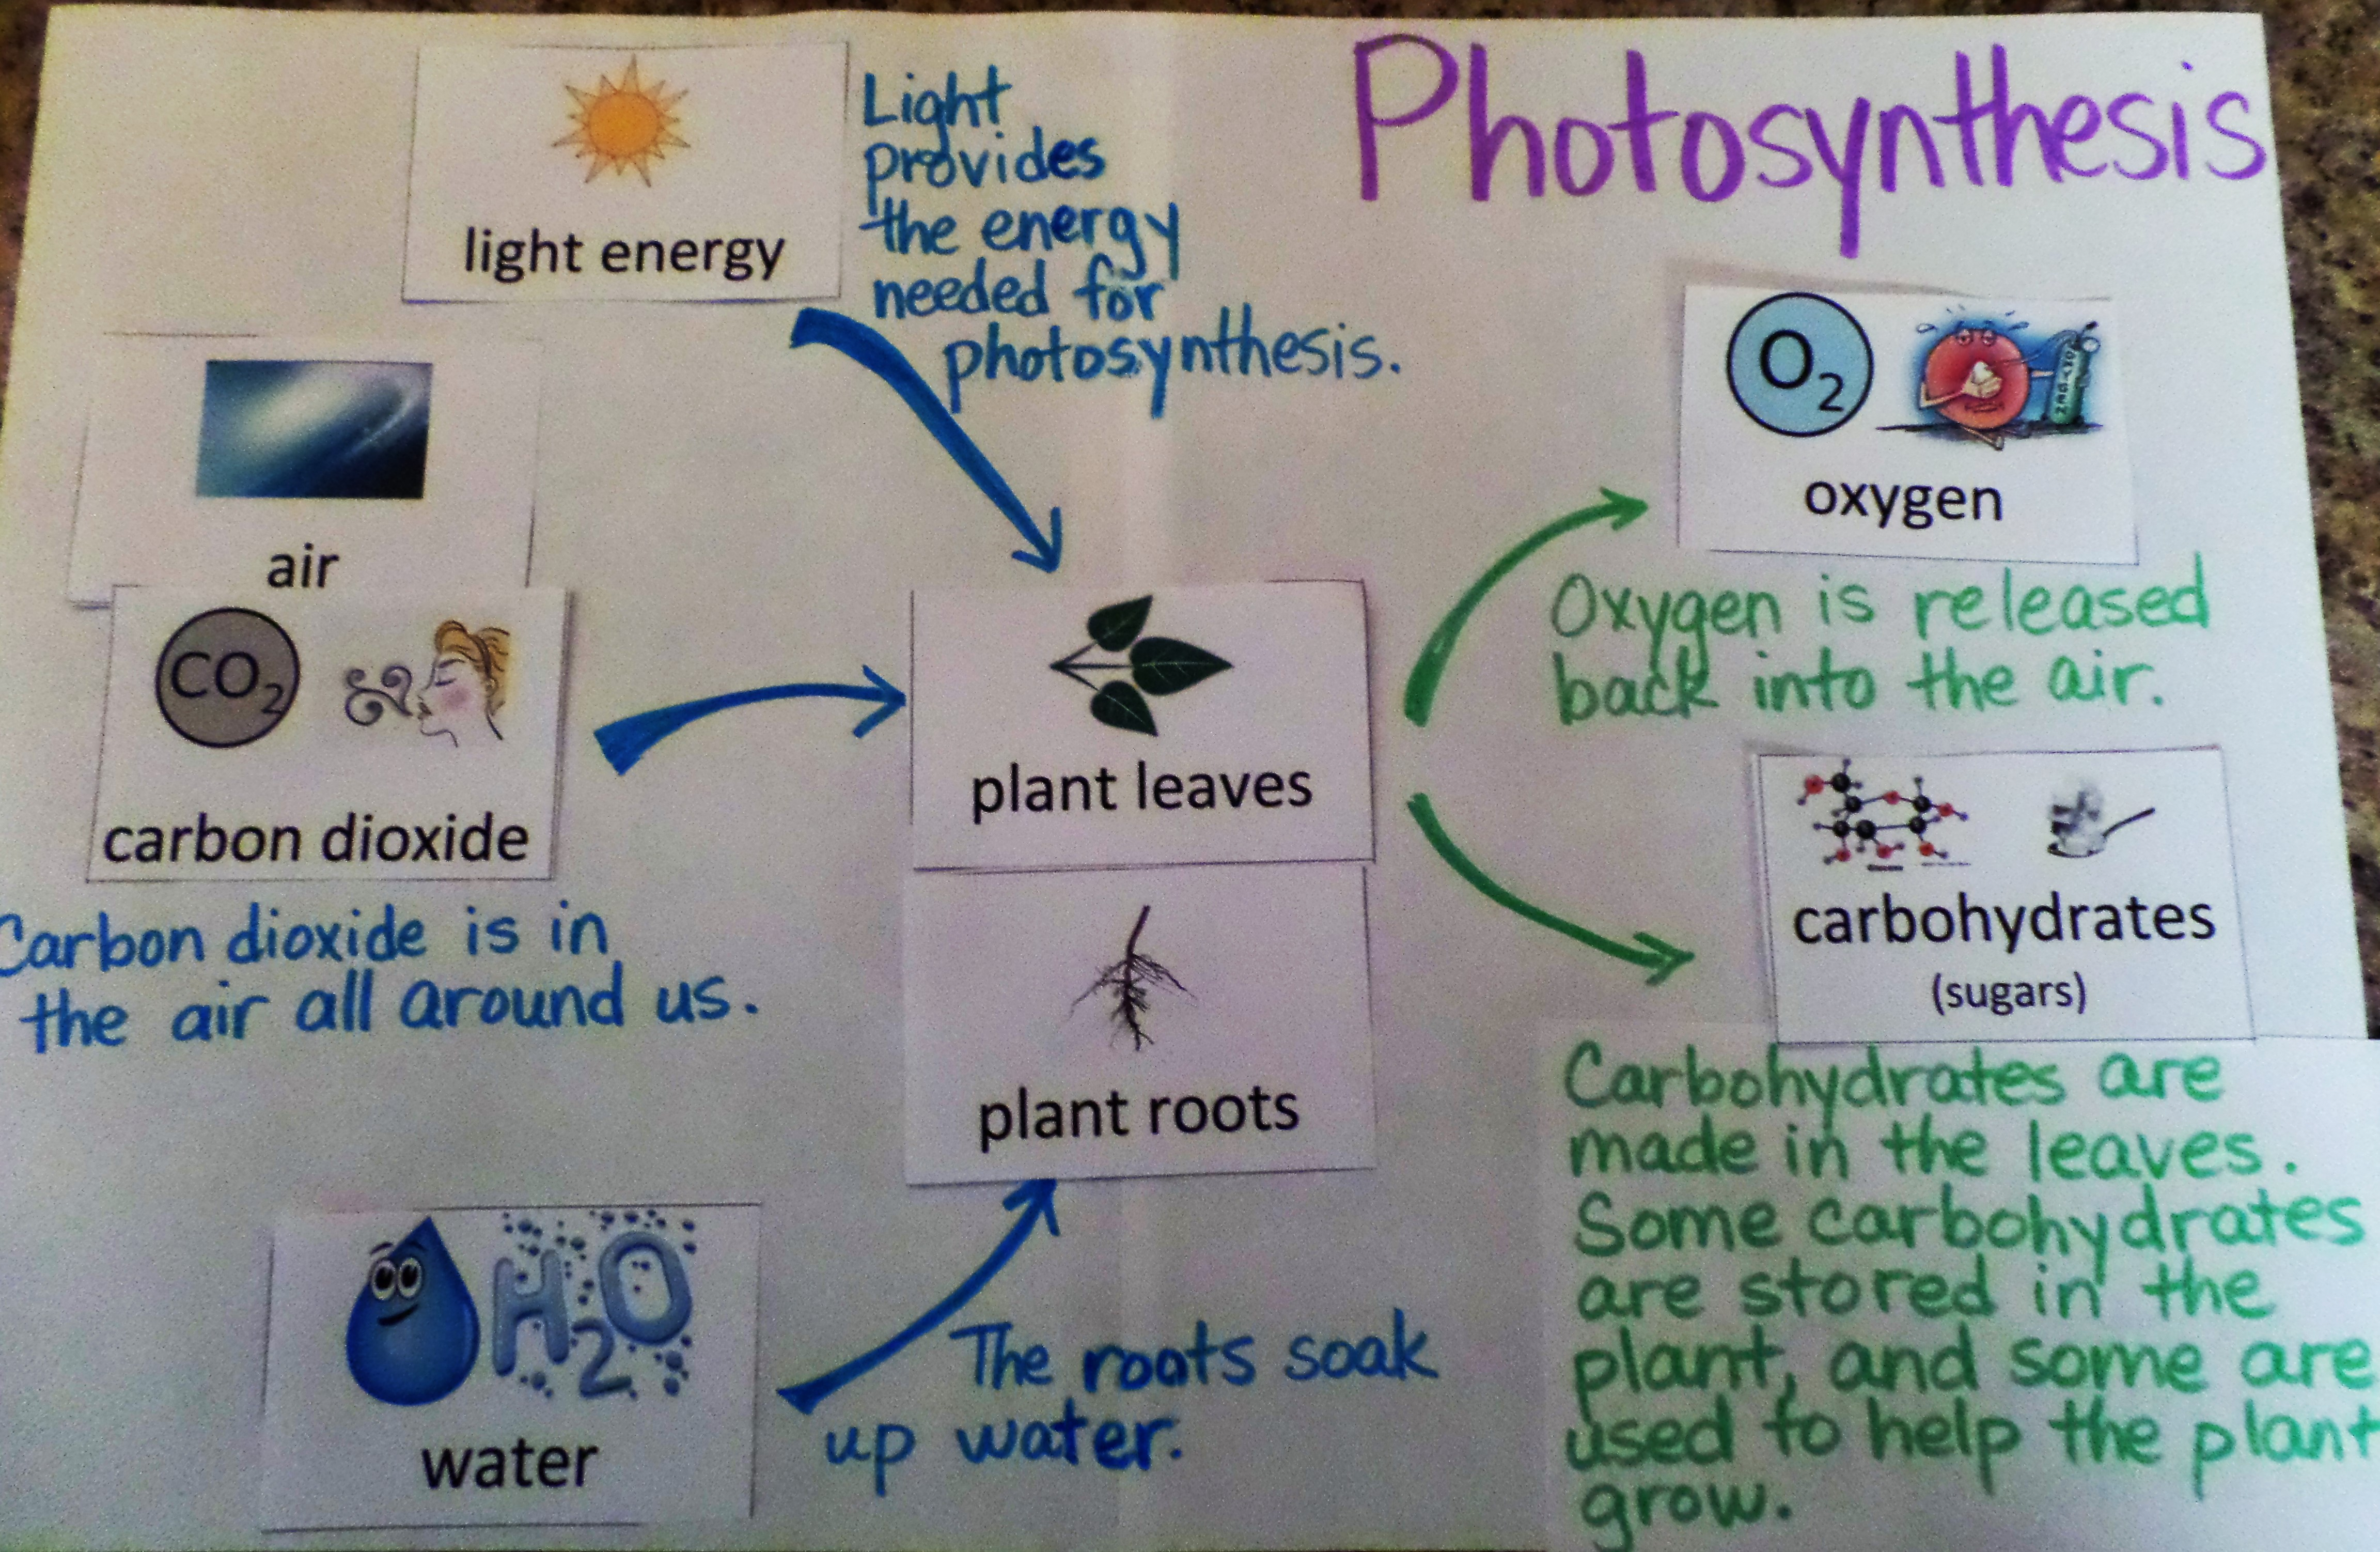 photosynthesis process diagram for 5th grade industrial wiring symbols alex alabama learning exchange